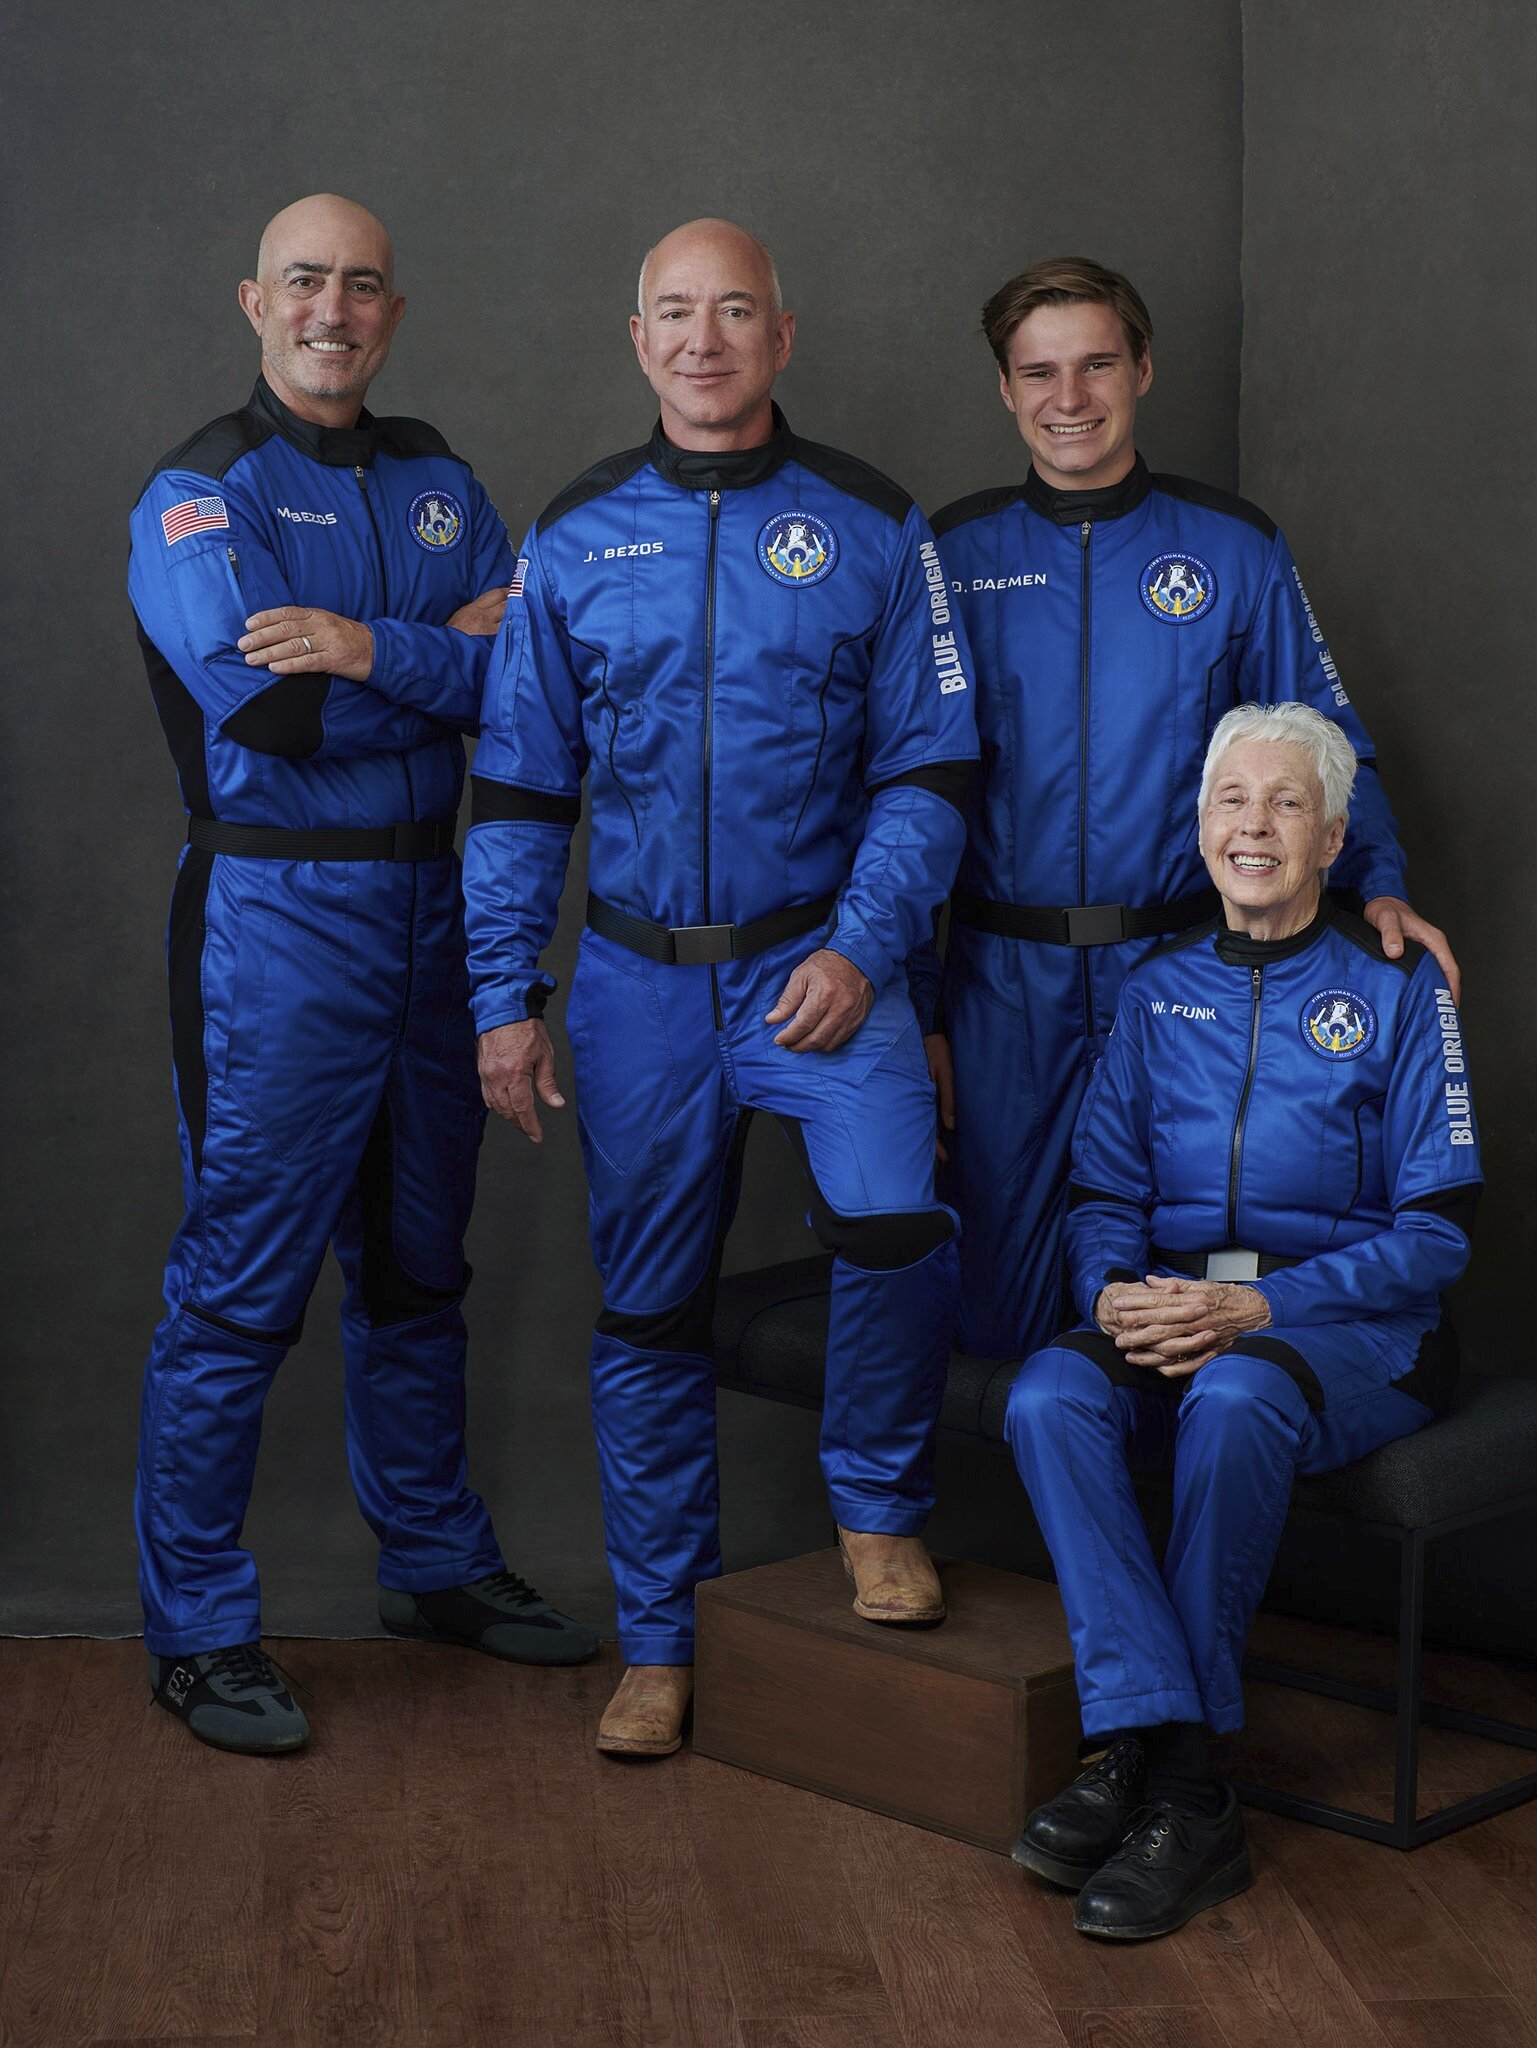 In this photo provided by Blue Origin, (left to right): Mark Bezos, Jeff Bezos, Oliver Daemen and Wally Funk, pose for a photo. (Blue Origin via AP Photo)